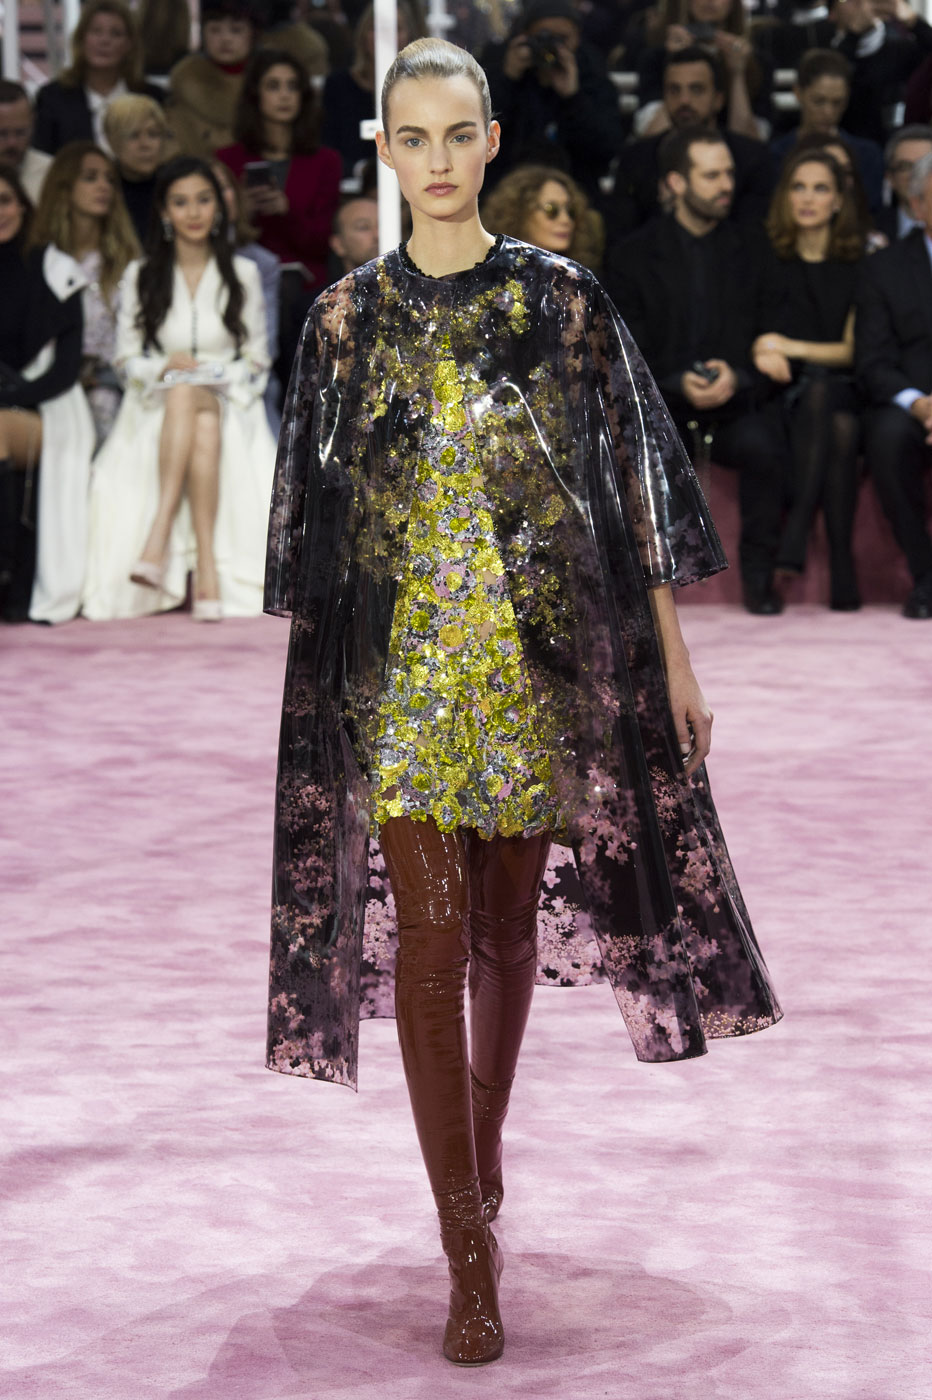 Christian-Dior-fashion-runway-show-haute-couture-paris-spring-summer-2015-the-impression-005